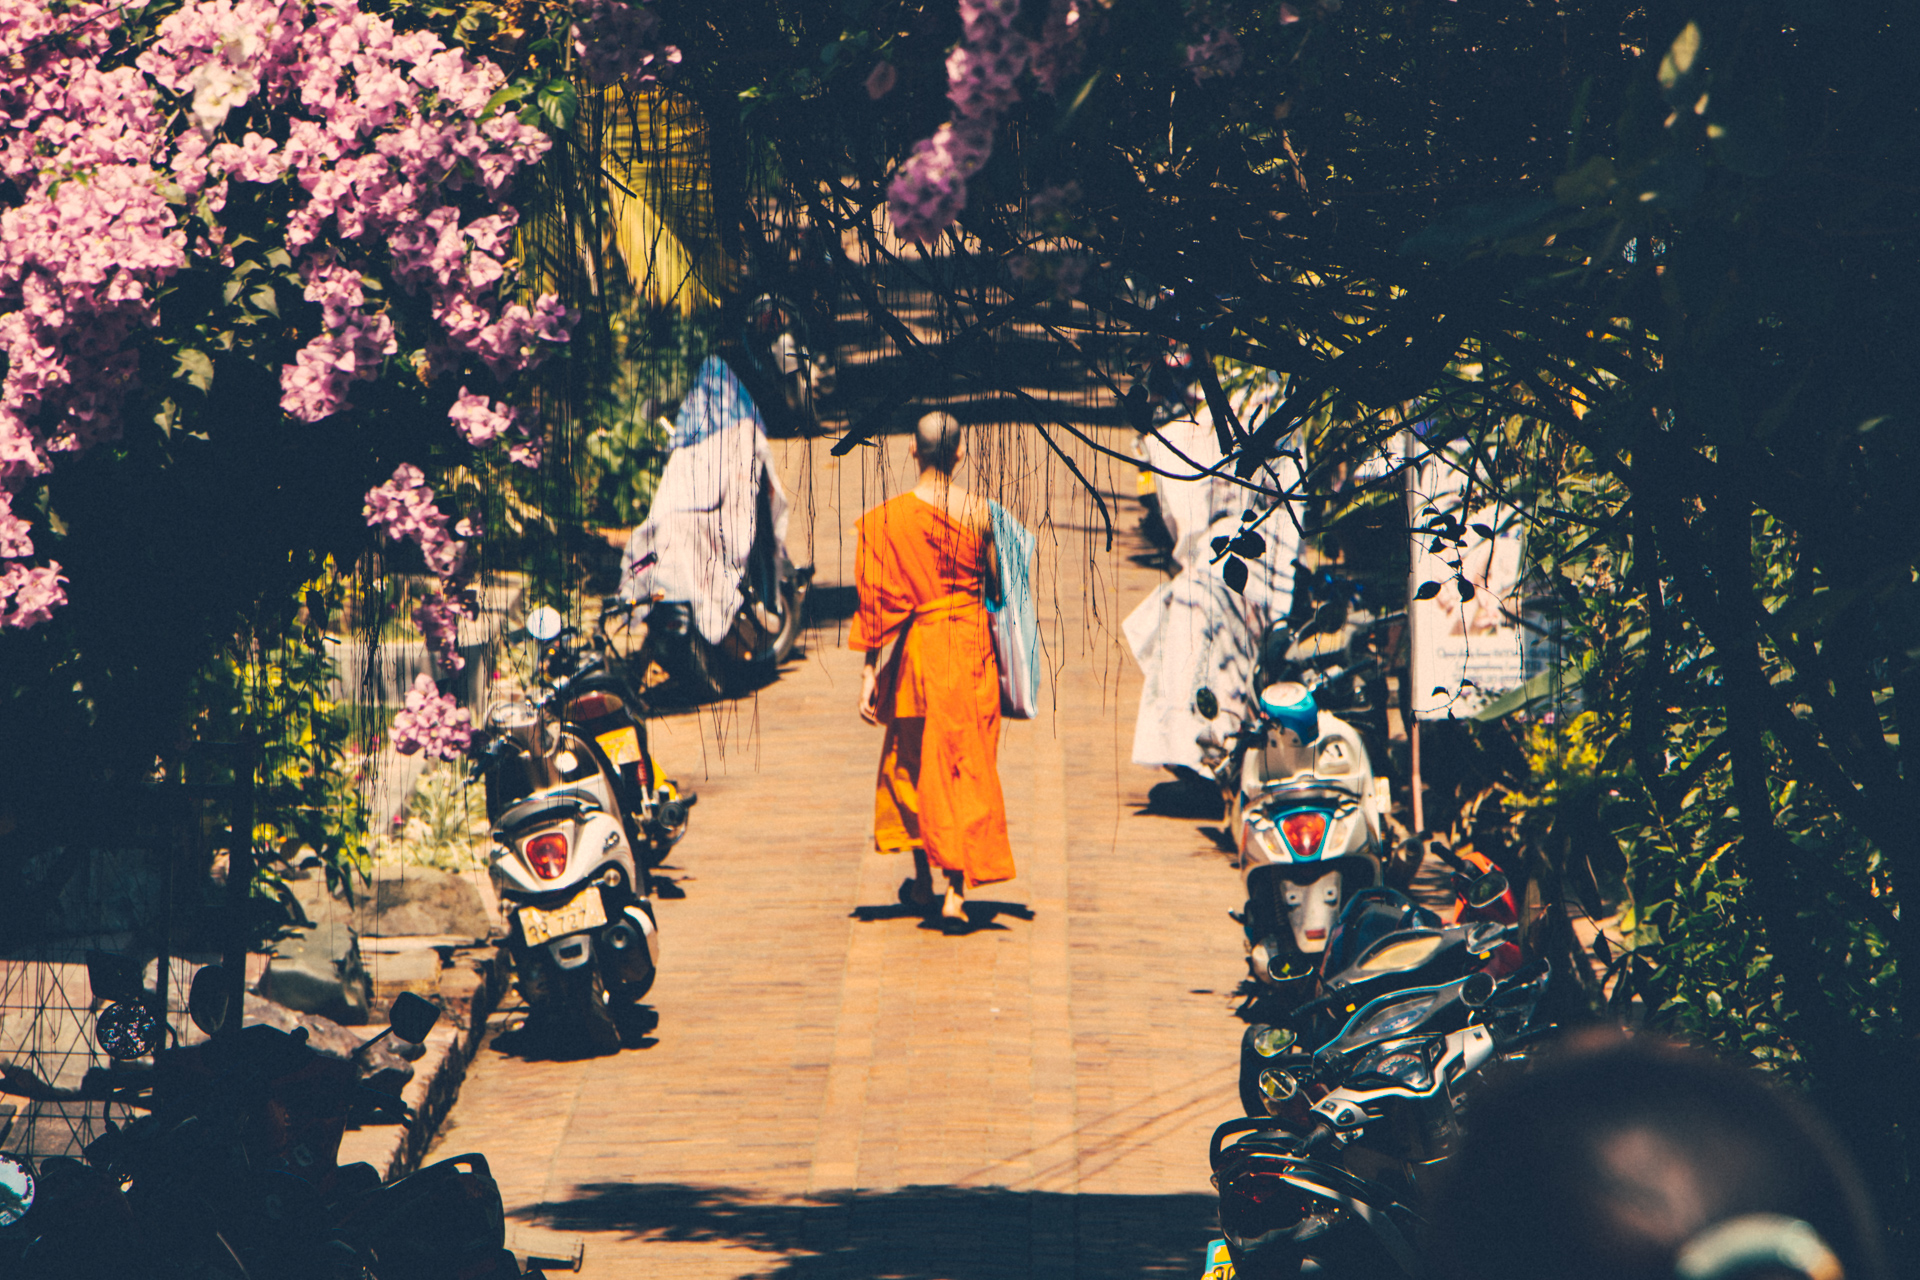 Monk walks into distance through flowers